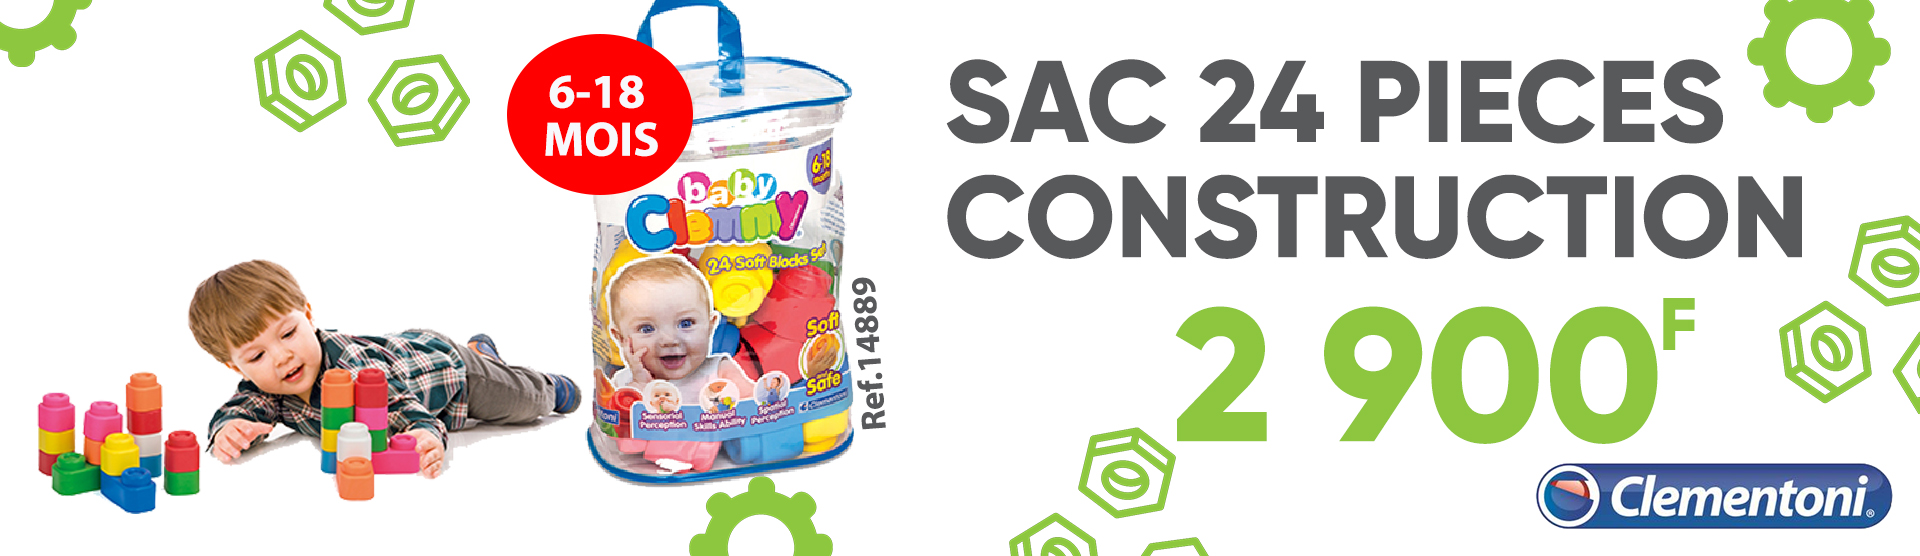 SAC_QOUPLE_JEU_ENFANT_24-PIECES_CONSTRUCTION